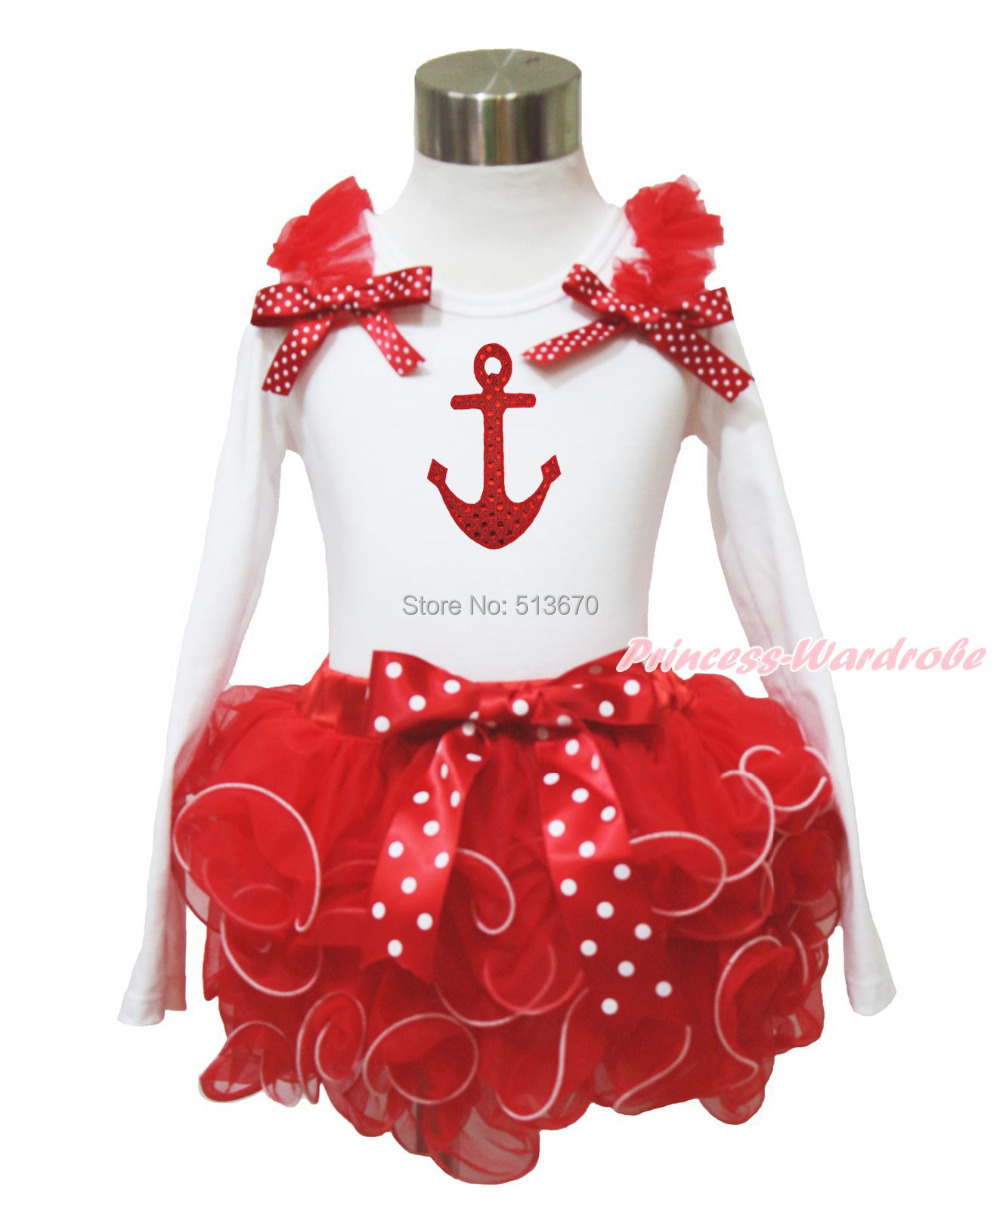 Bling Anchor Print Red Ruffle Red White Dot Bow White Top Baby Girl Red Petal Pettiskirt Outfit Set NB-8Y MAPSA0086<br><br>Aliexpress